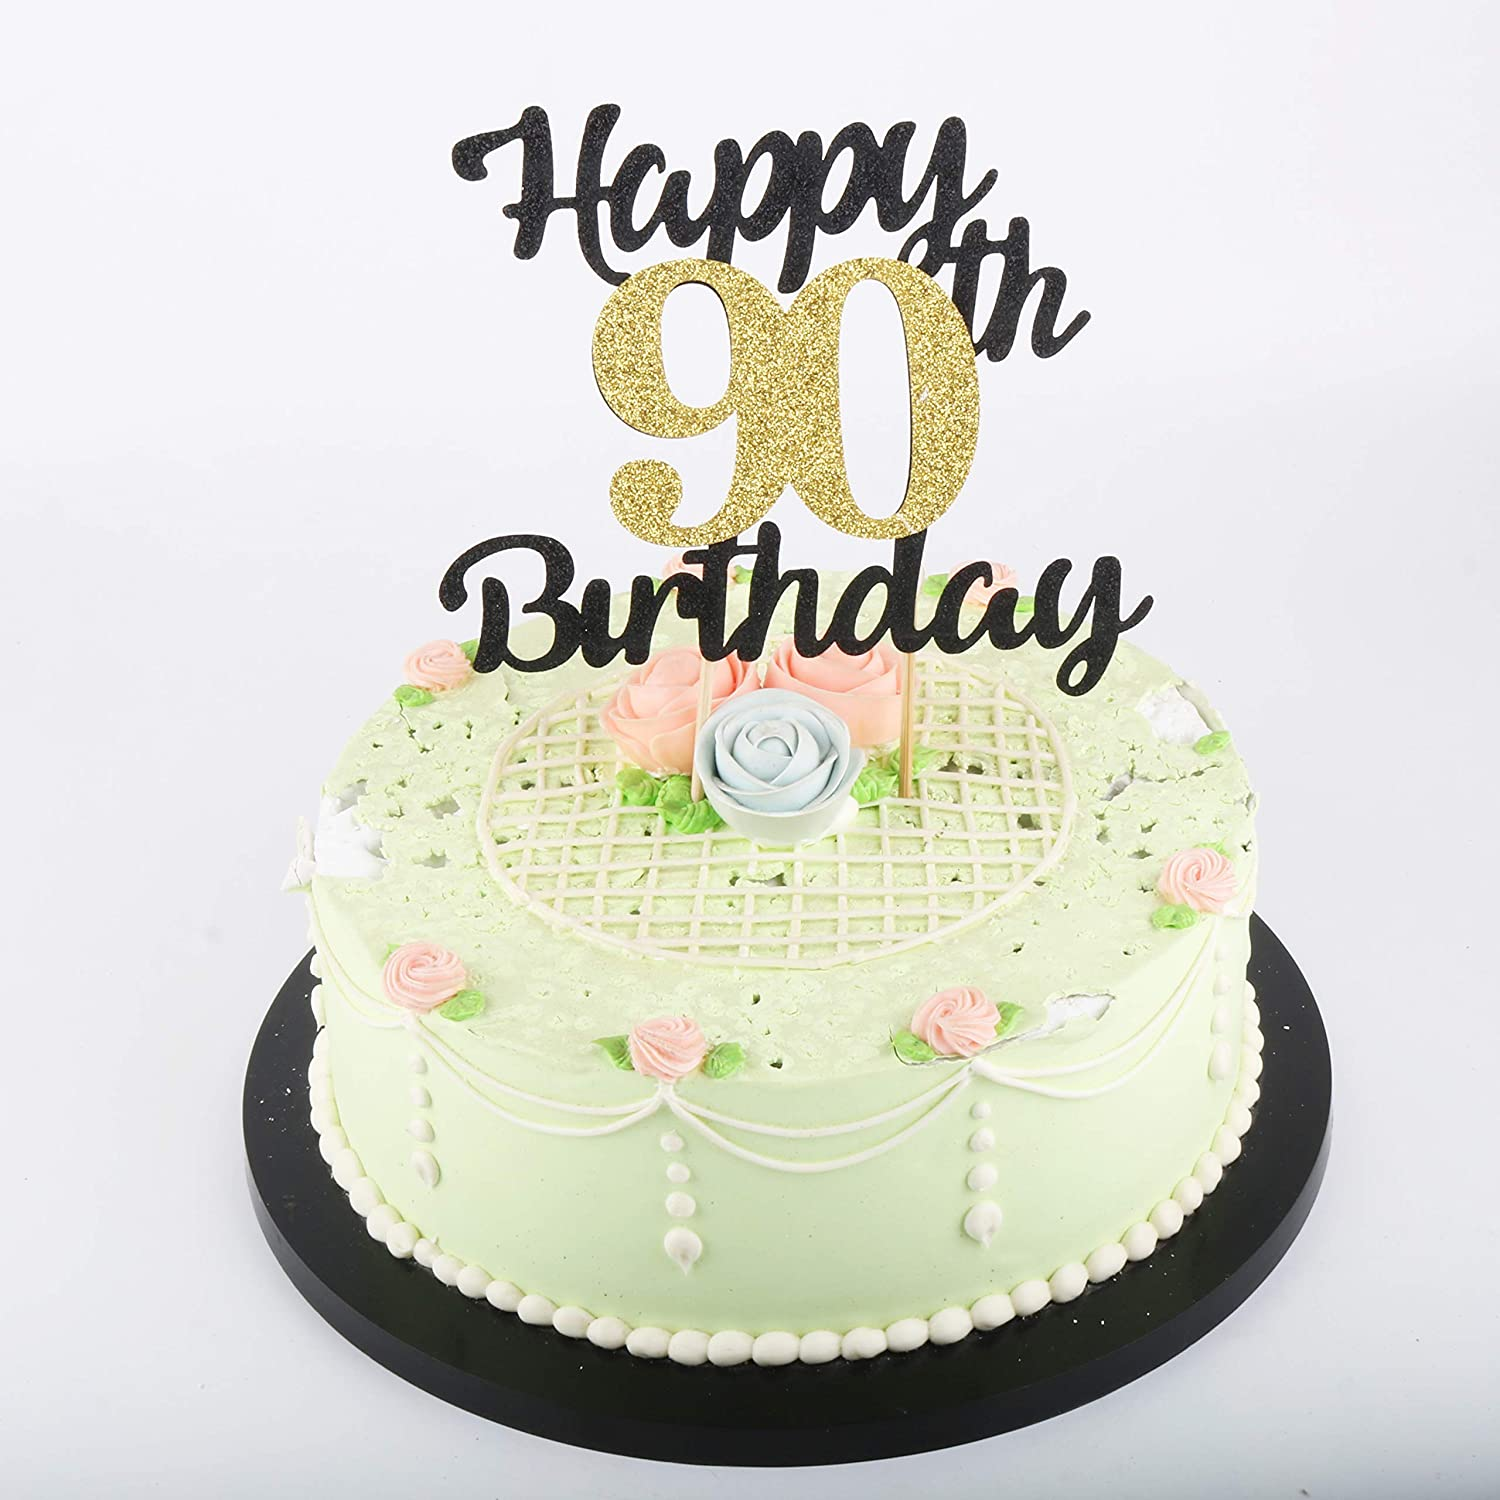 Amazon LVEUD Happy Birthday Cake Topper Black Font Golden Numbers 90th Party Decorations Toys Games